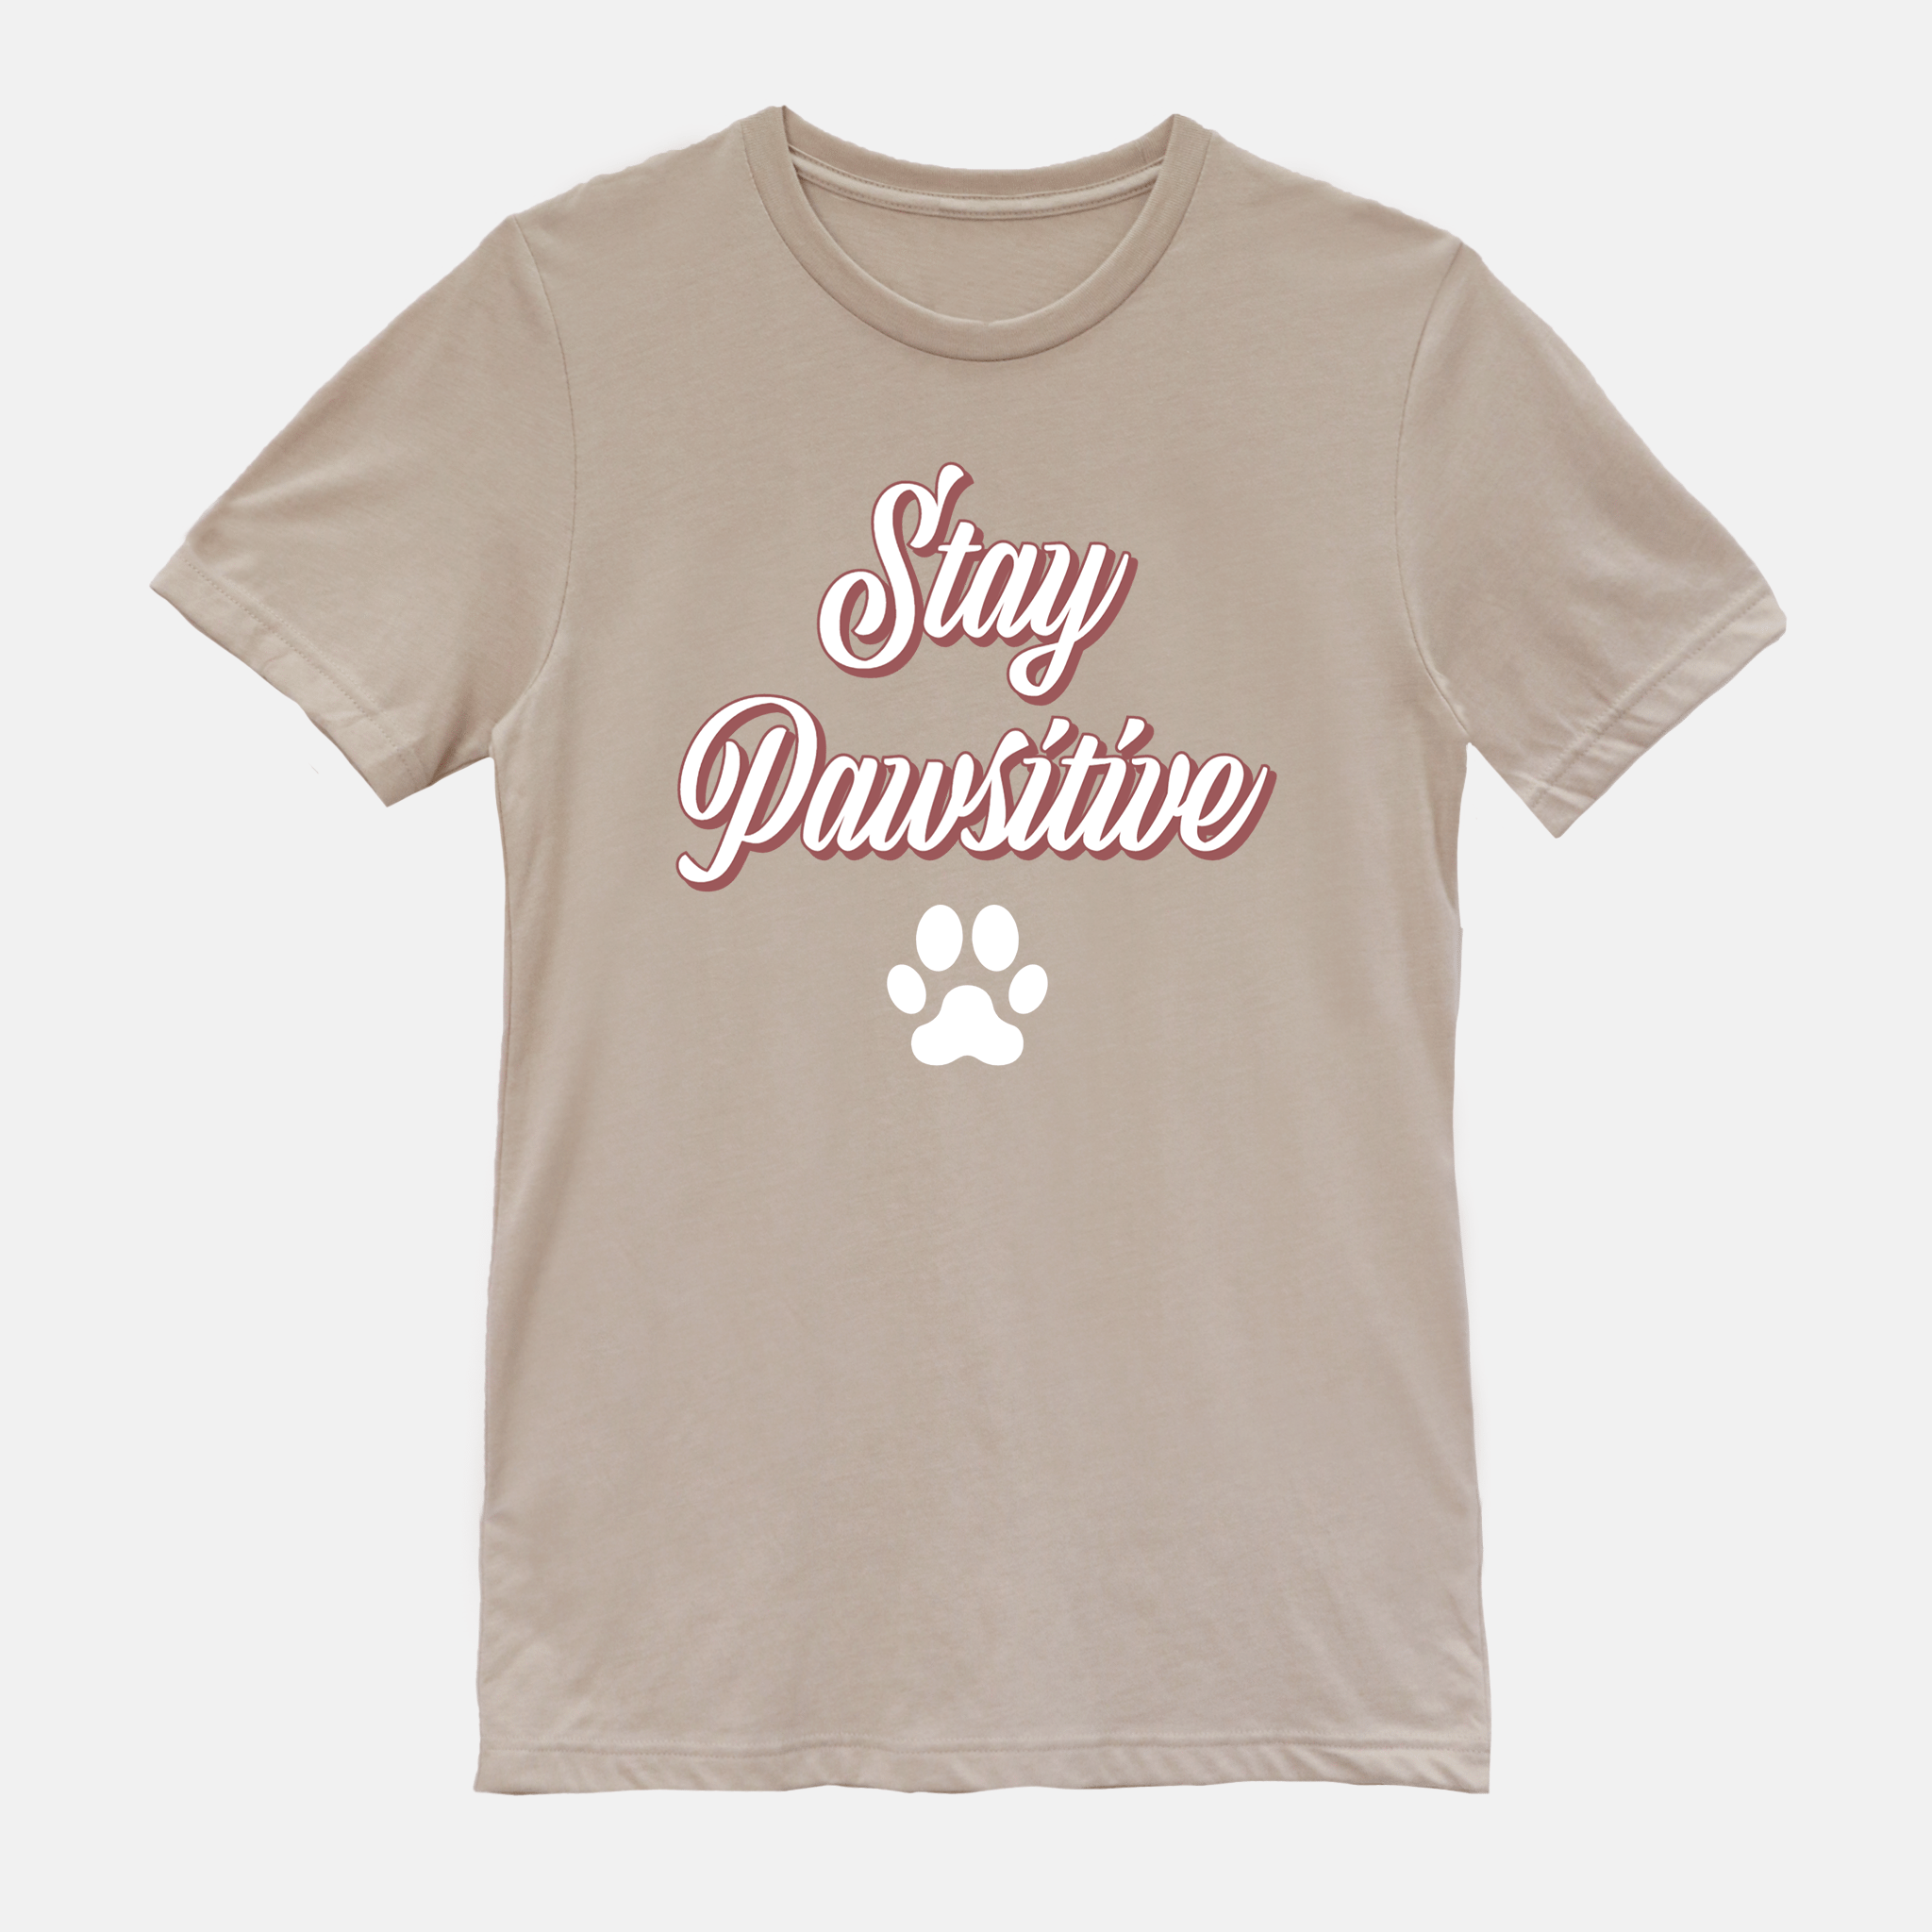 Stay Pawsitive Short Sleeves Shirt